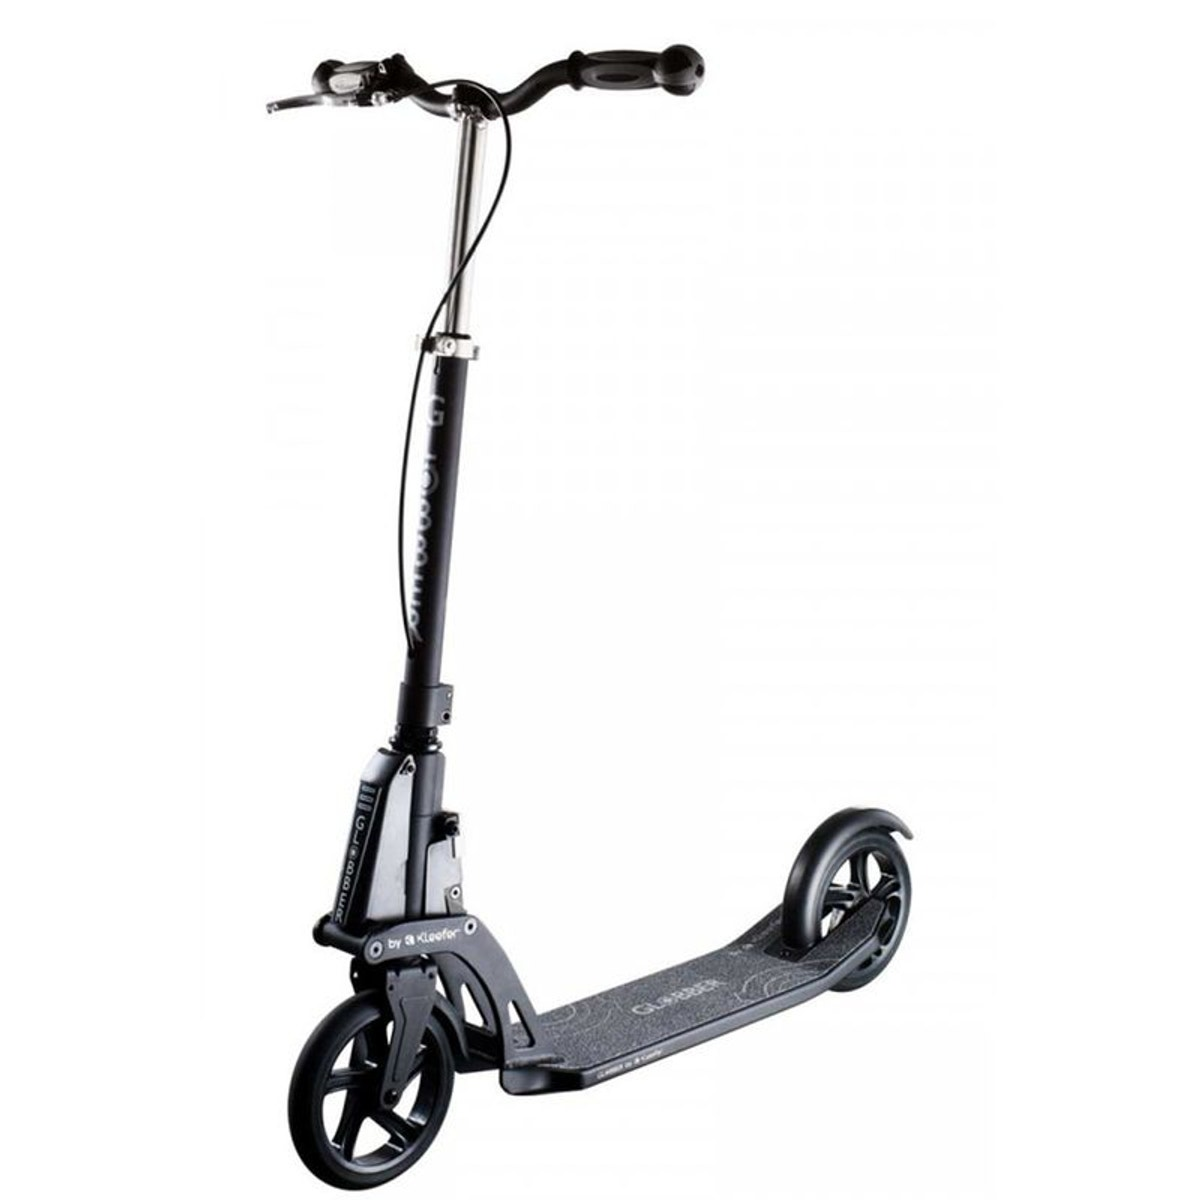 Globber trottinette balade my too 18 + en 2019 | Products